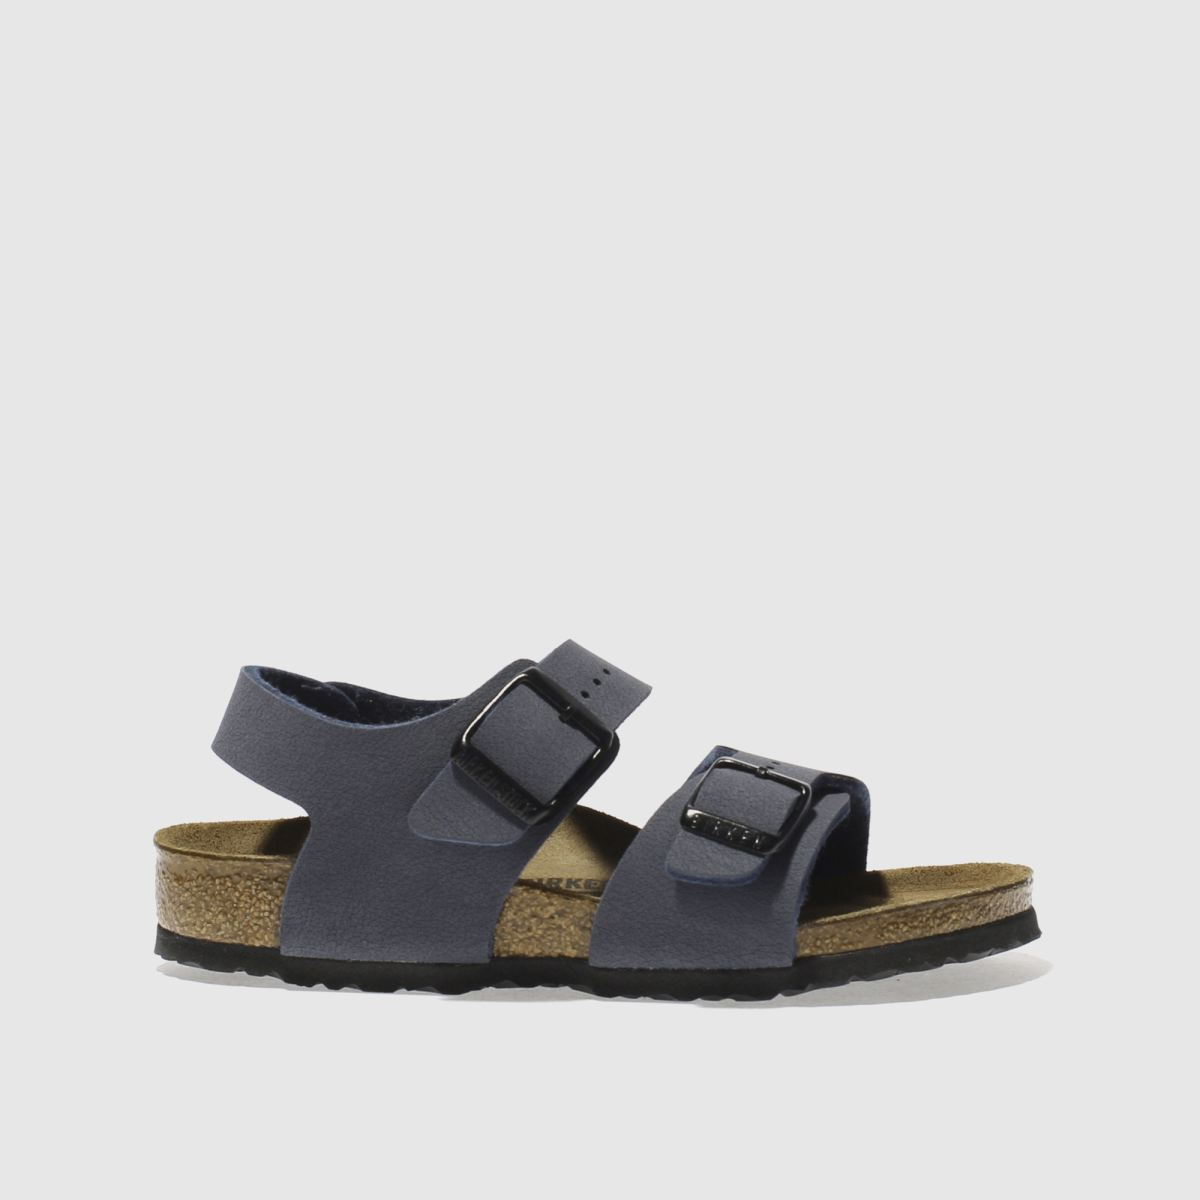 Birkenstock Navy New York Boys Toddler Sandals